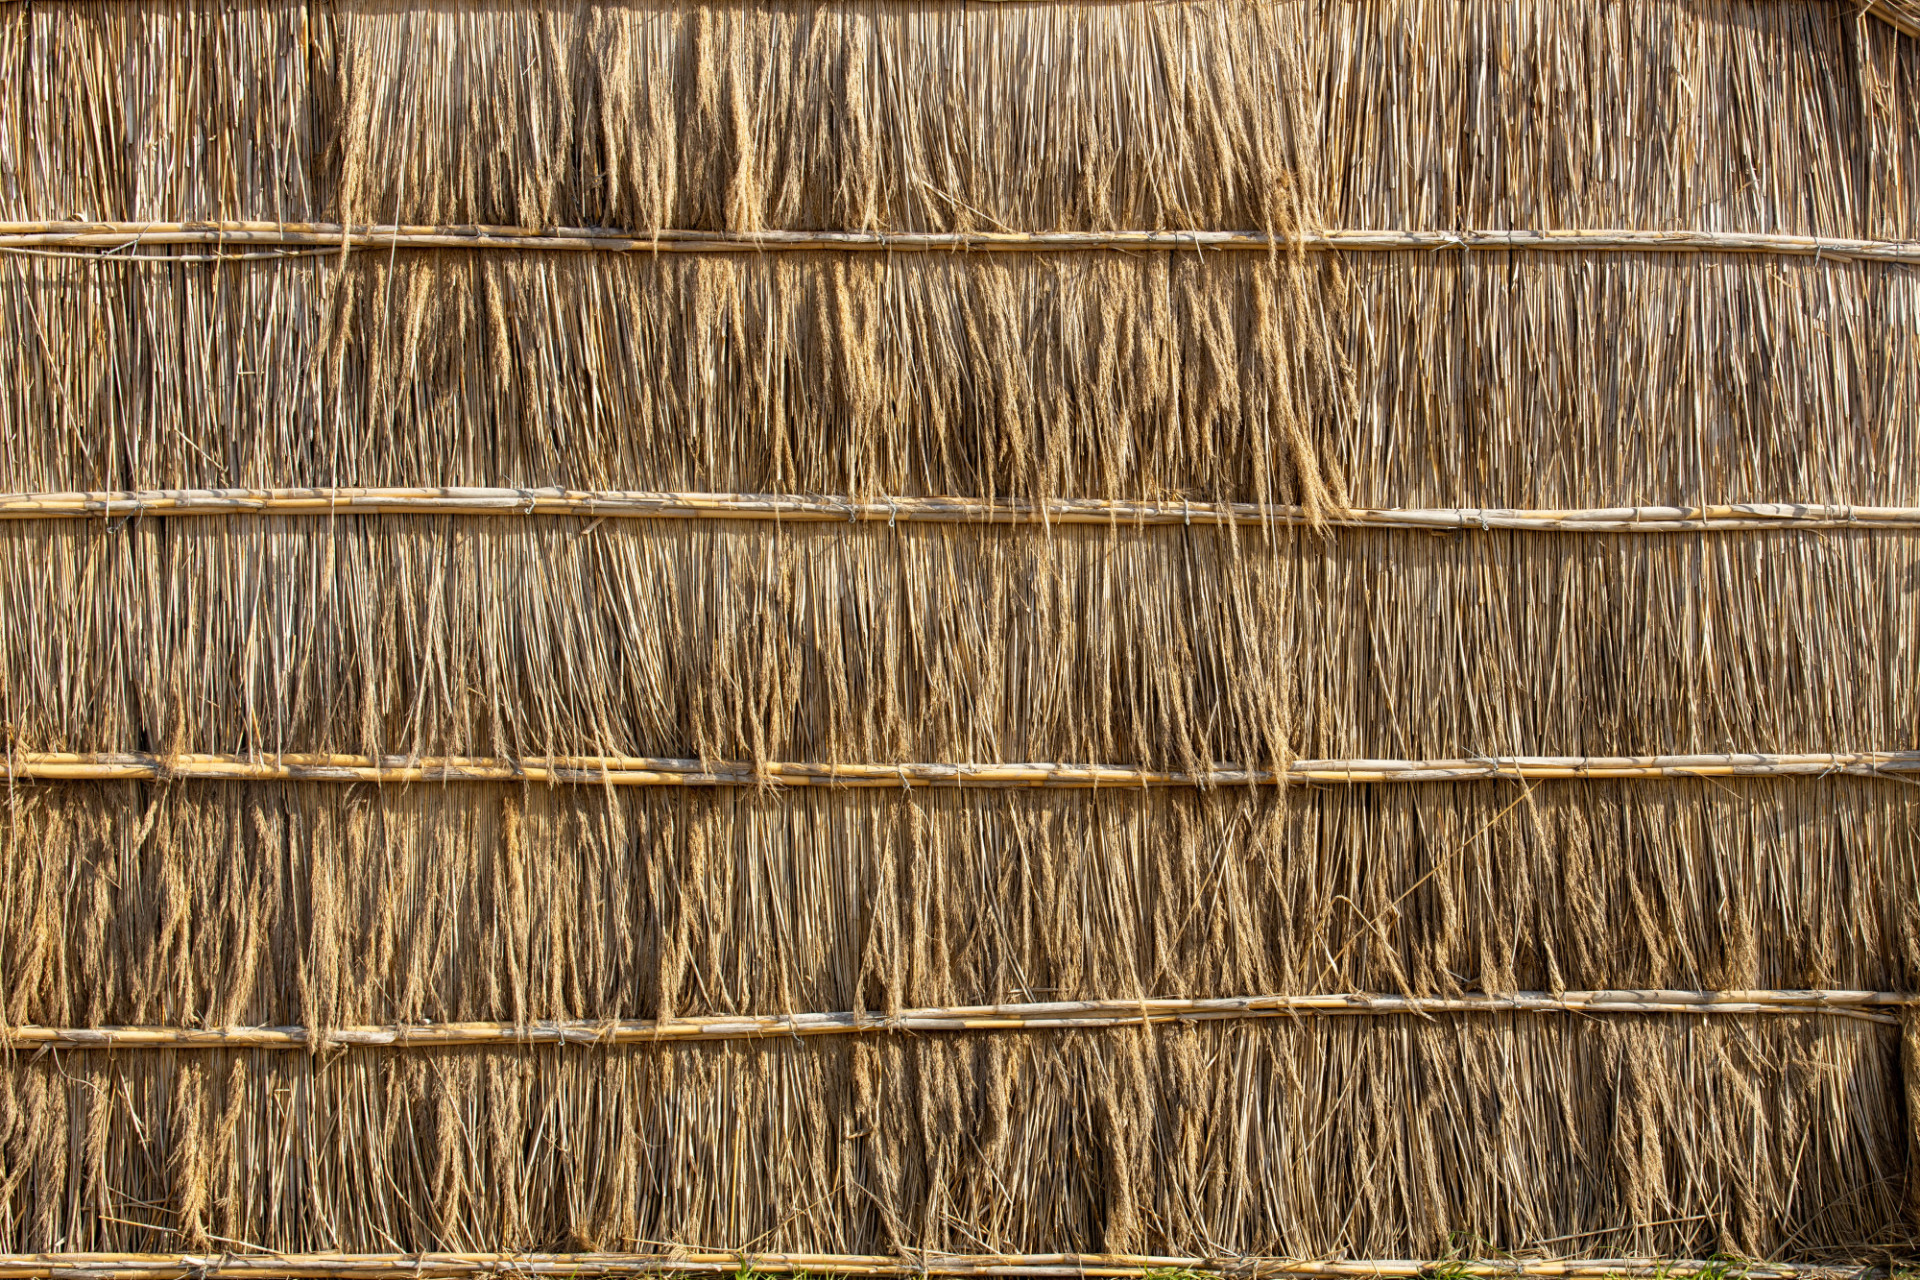 Straw wall texture